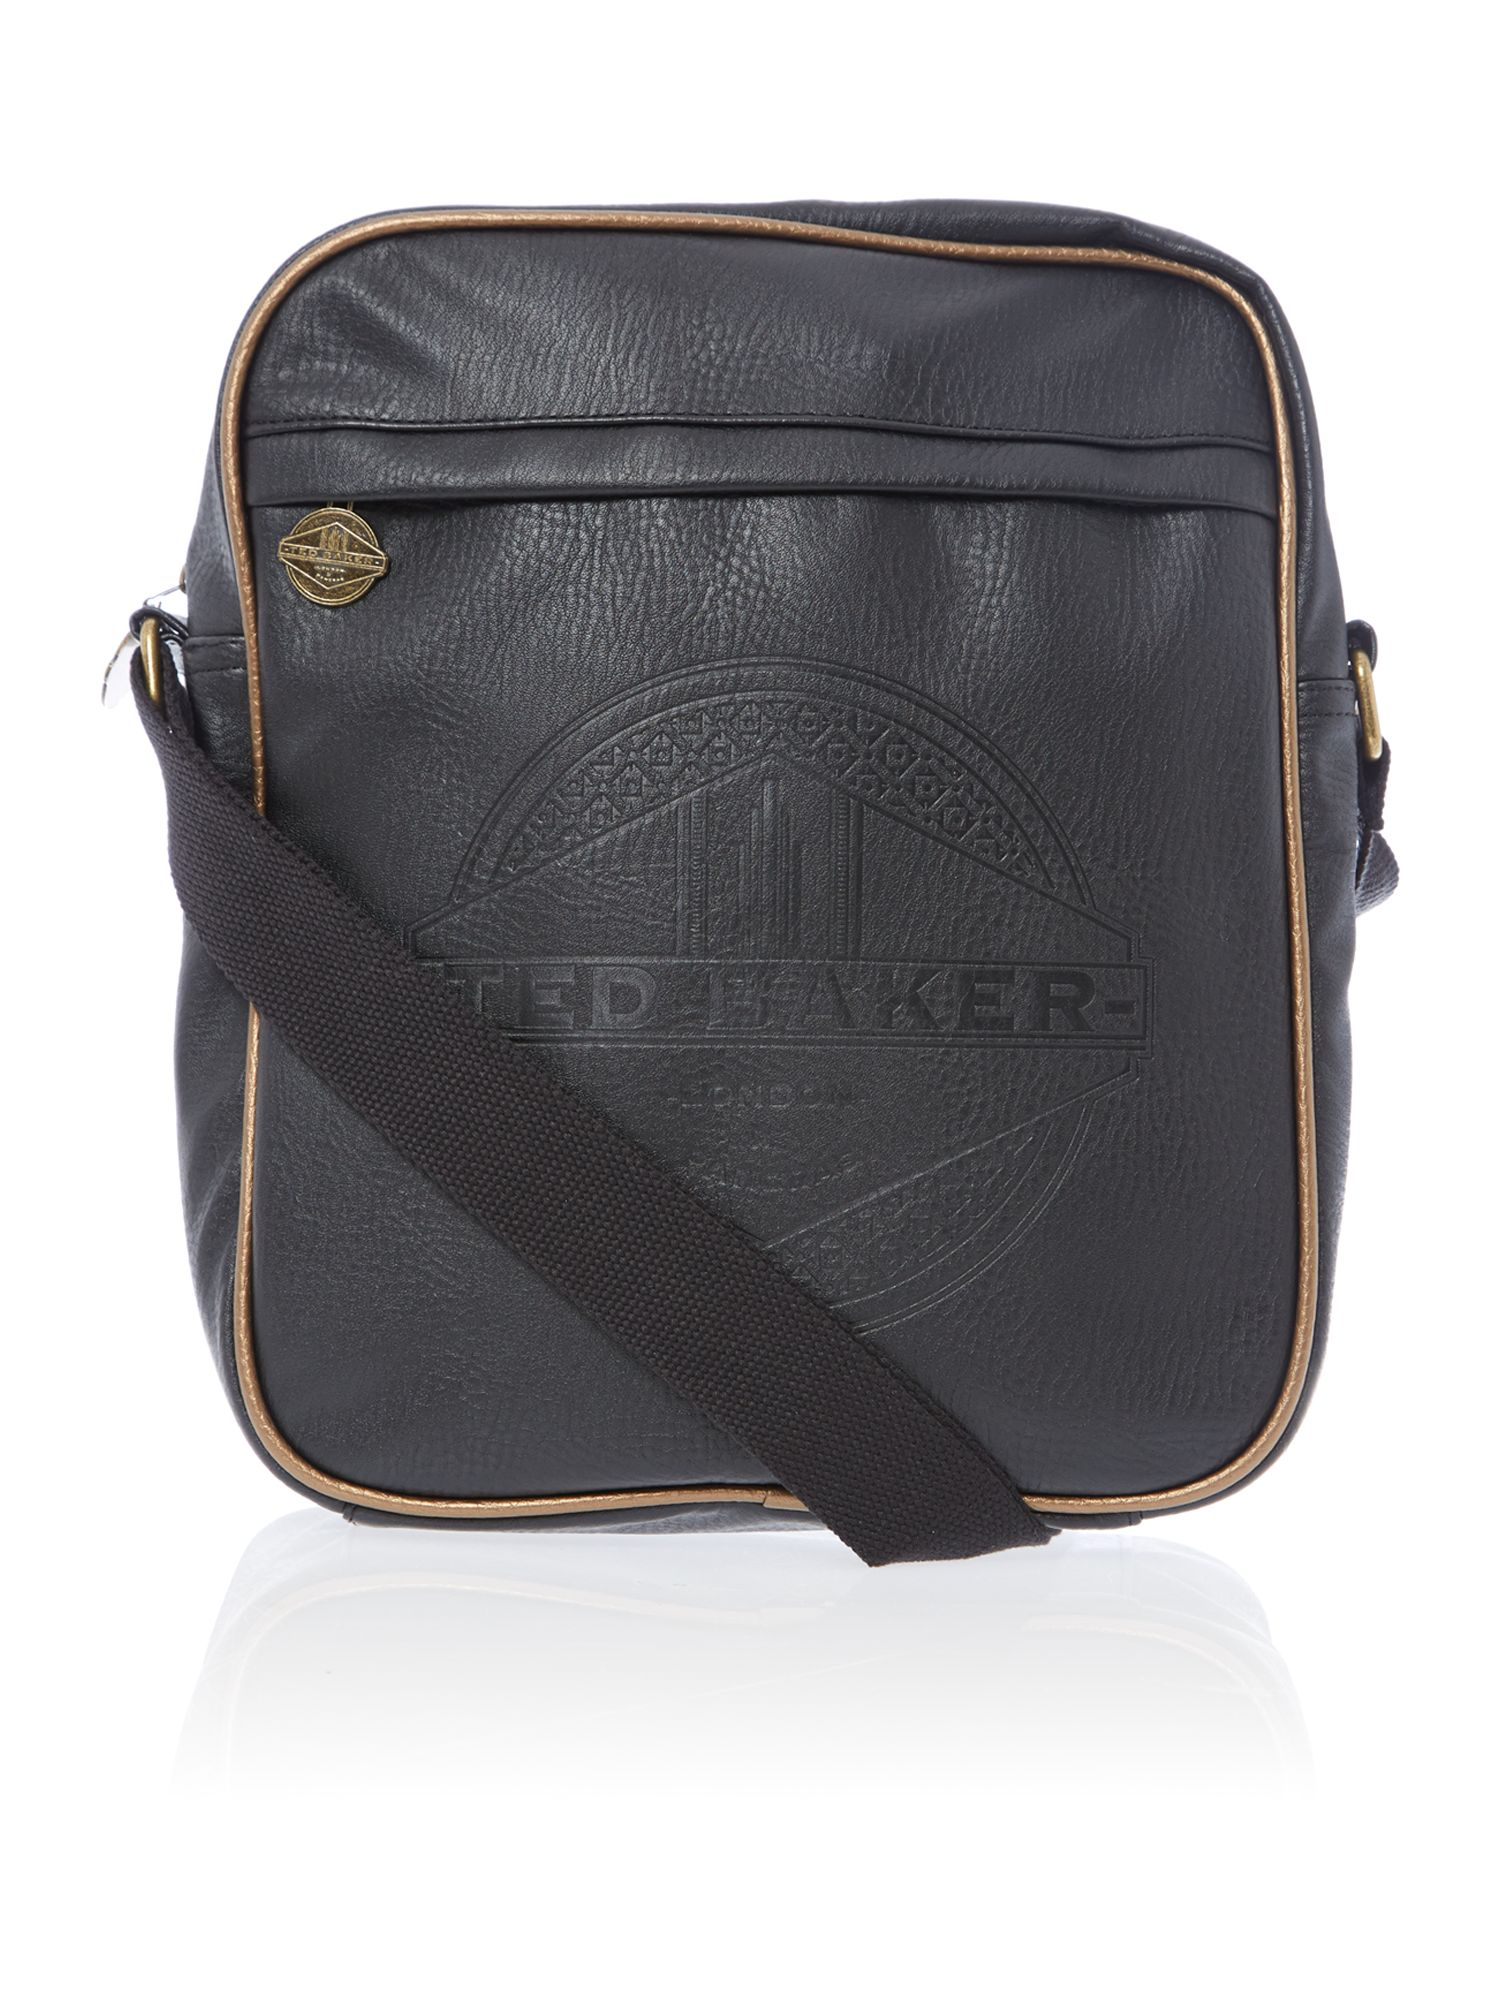 Raltos embossed flight bag